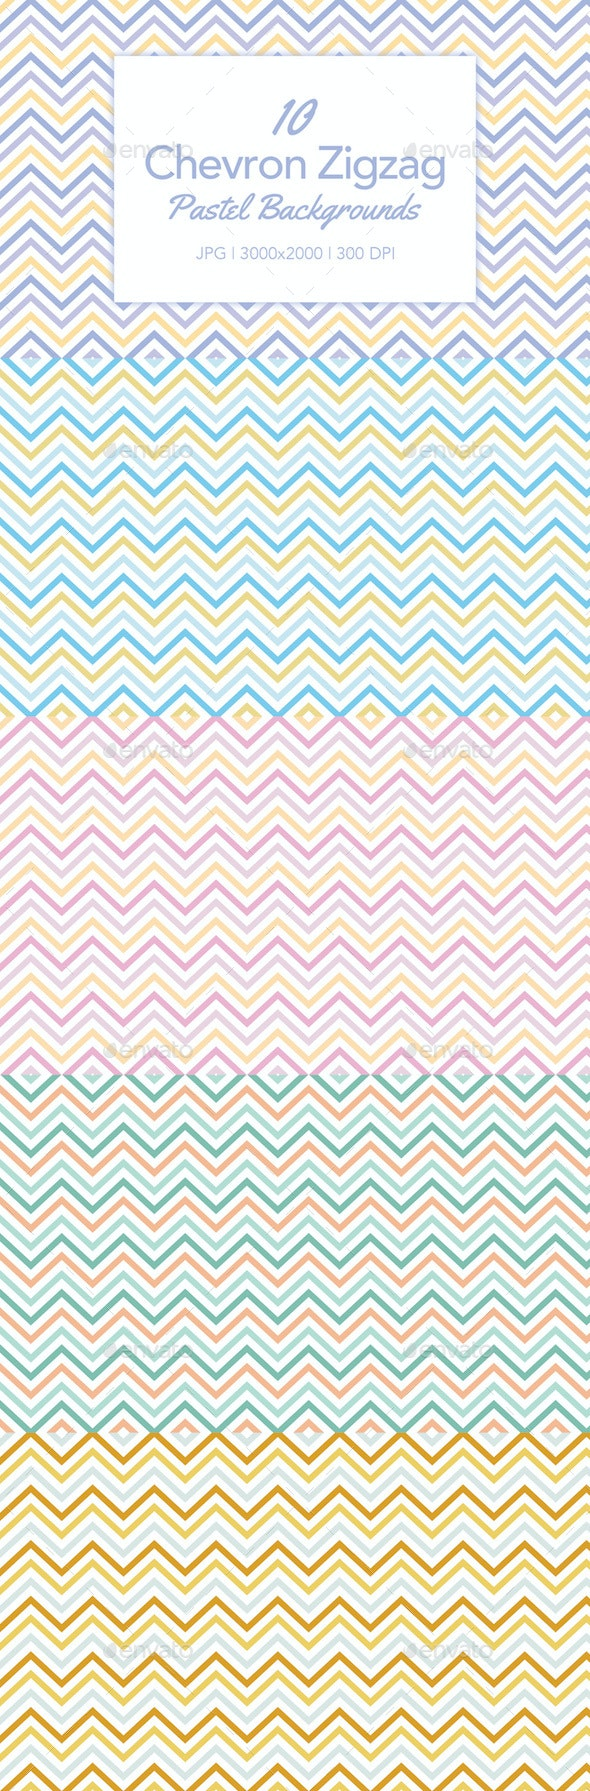 10 Chevron Zigzag Backgrounds in Pastel Colors - Abstract Backgrounds